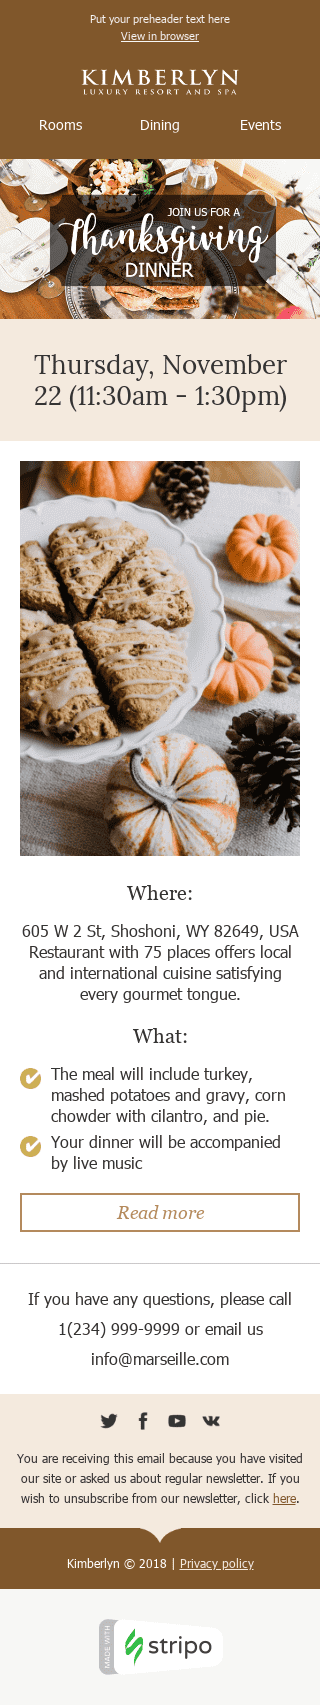 Stripo Hotels Holiday newsletter Thanksgiving Day Delicious Dinner email web